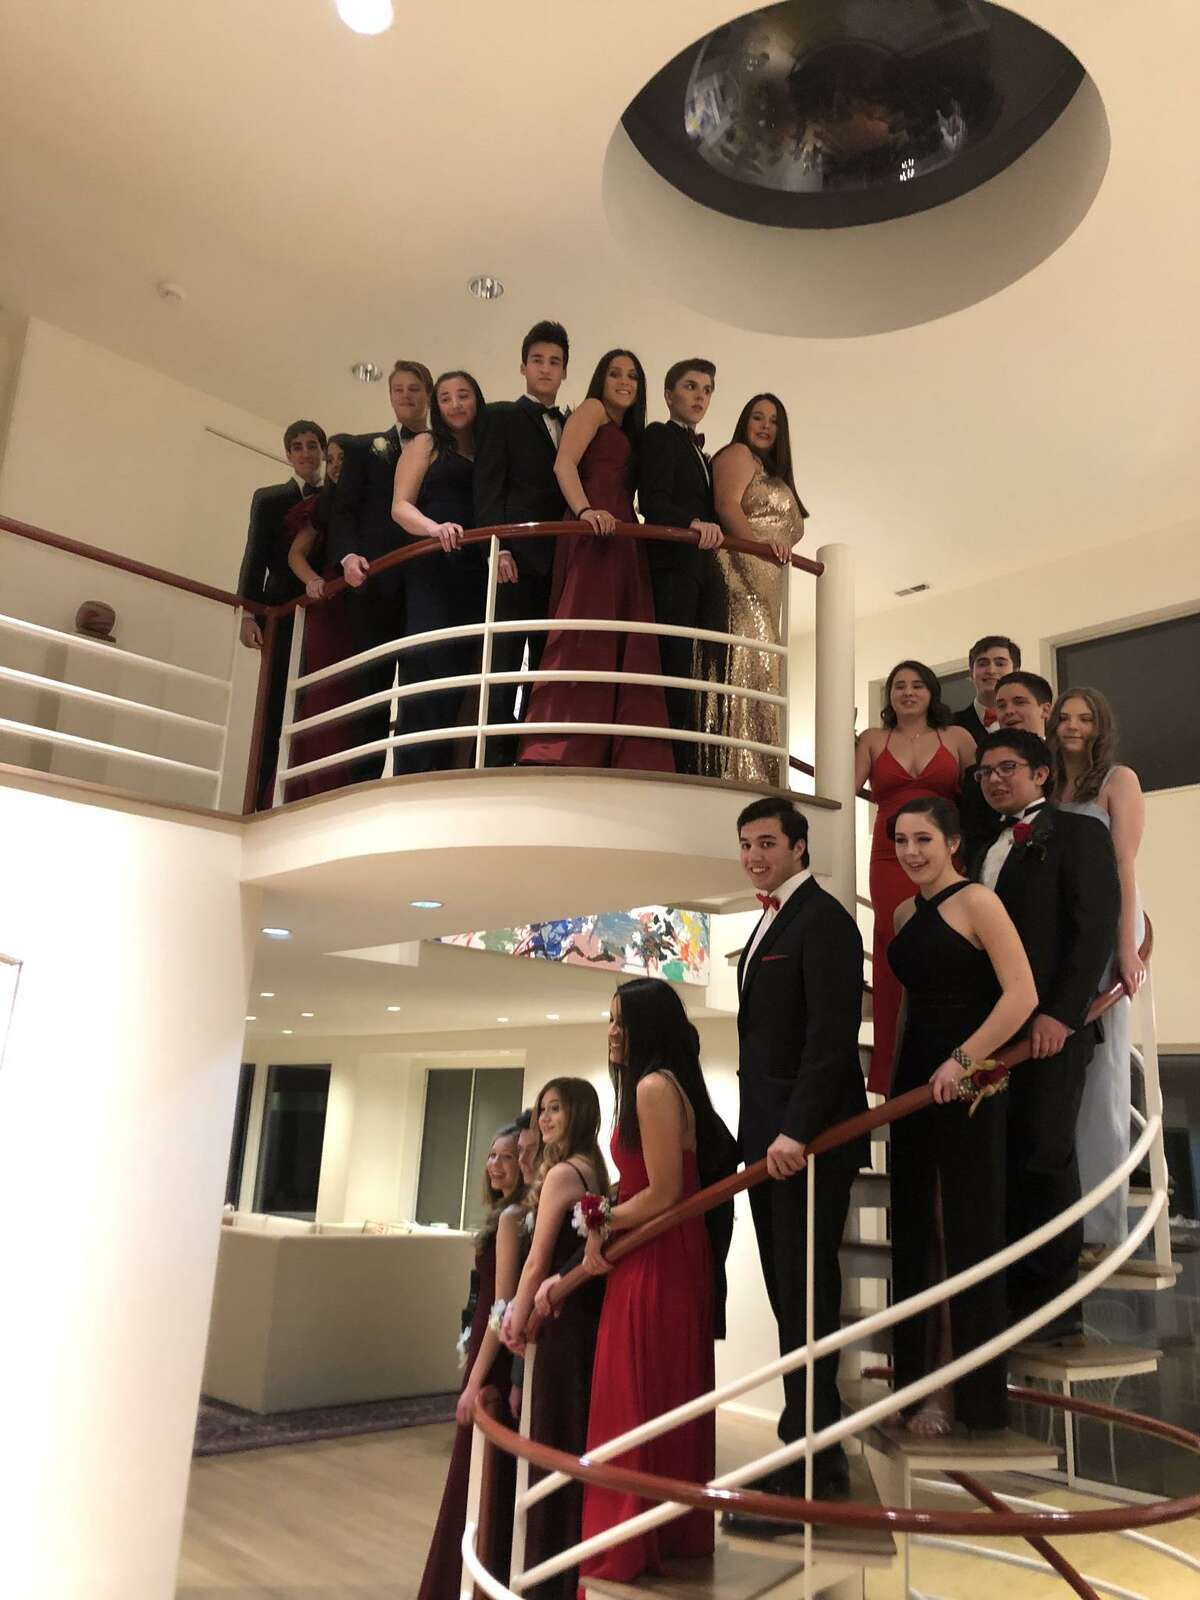 Couples from Weston pose before attending the County Assembly Ball, called